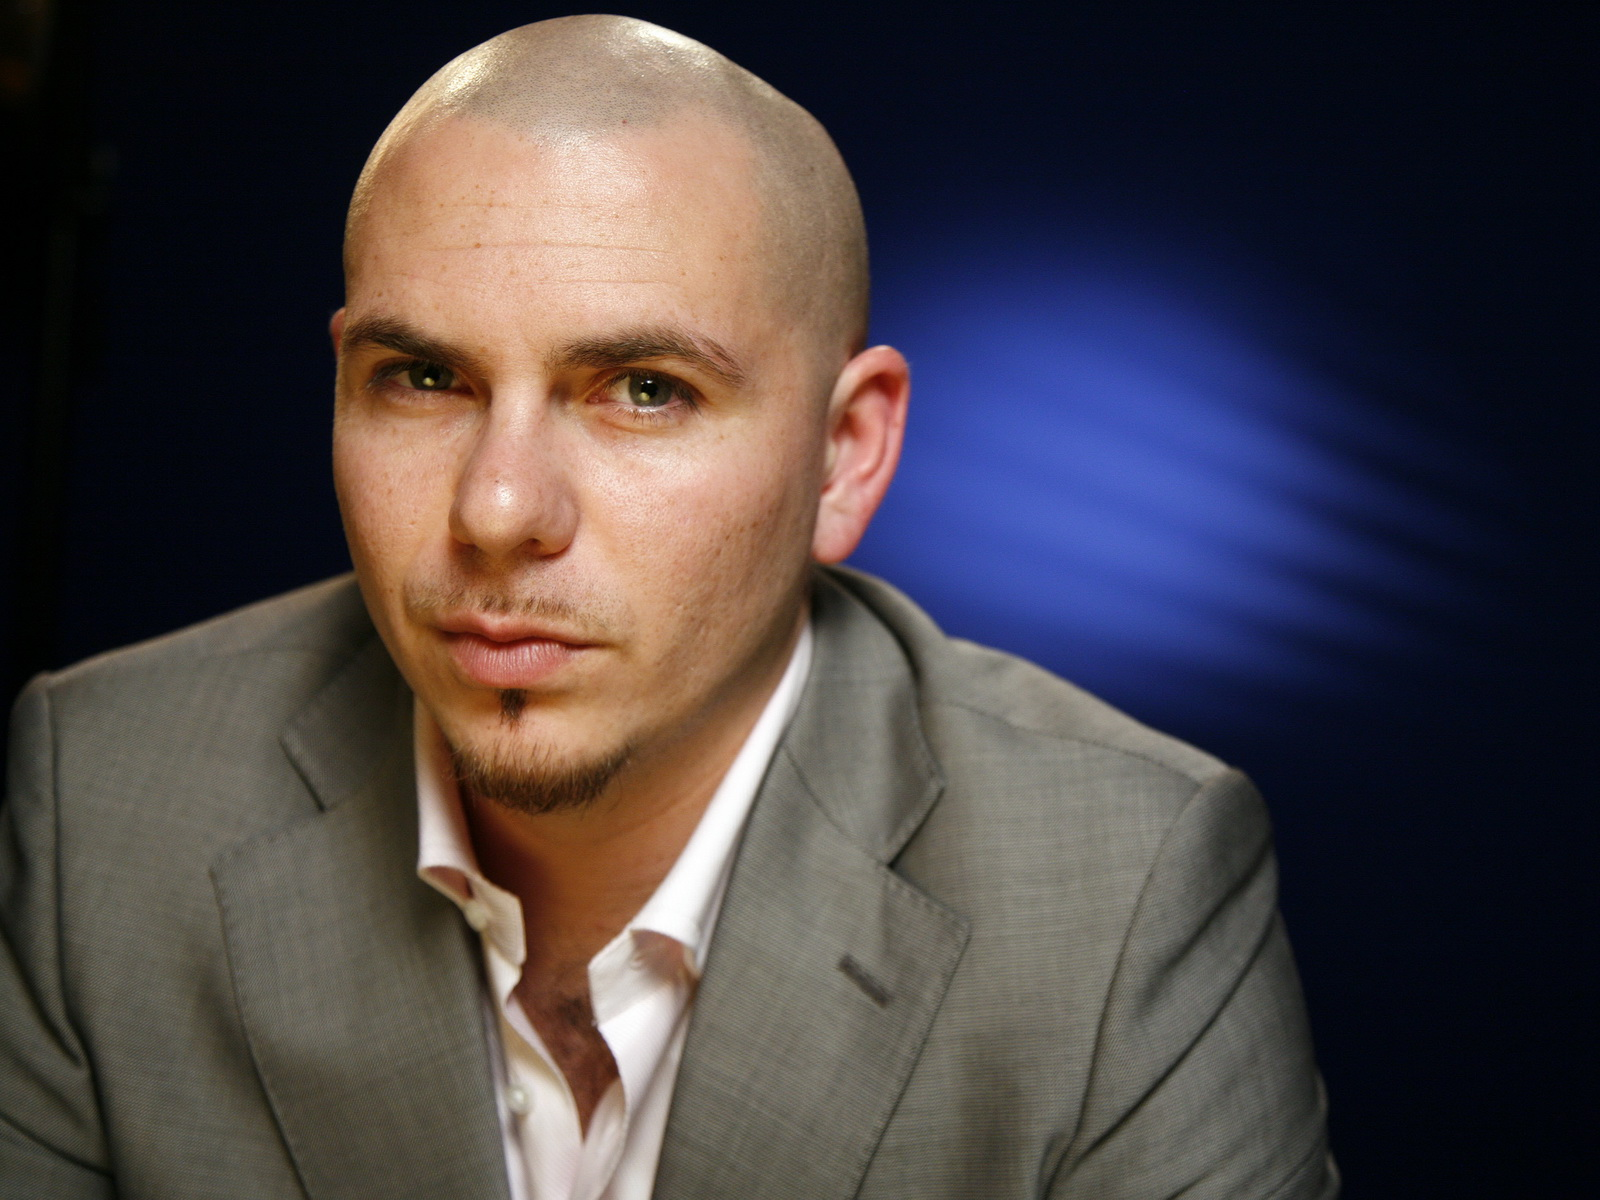 Pitbull Rapper Pictures & image